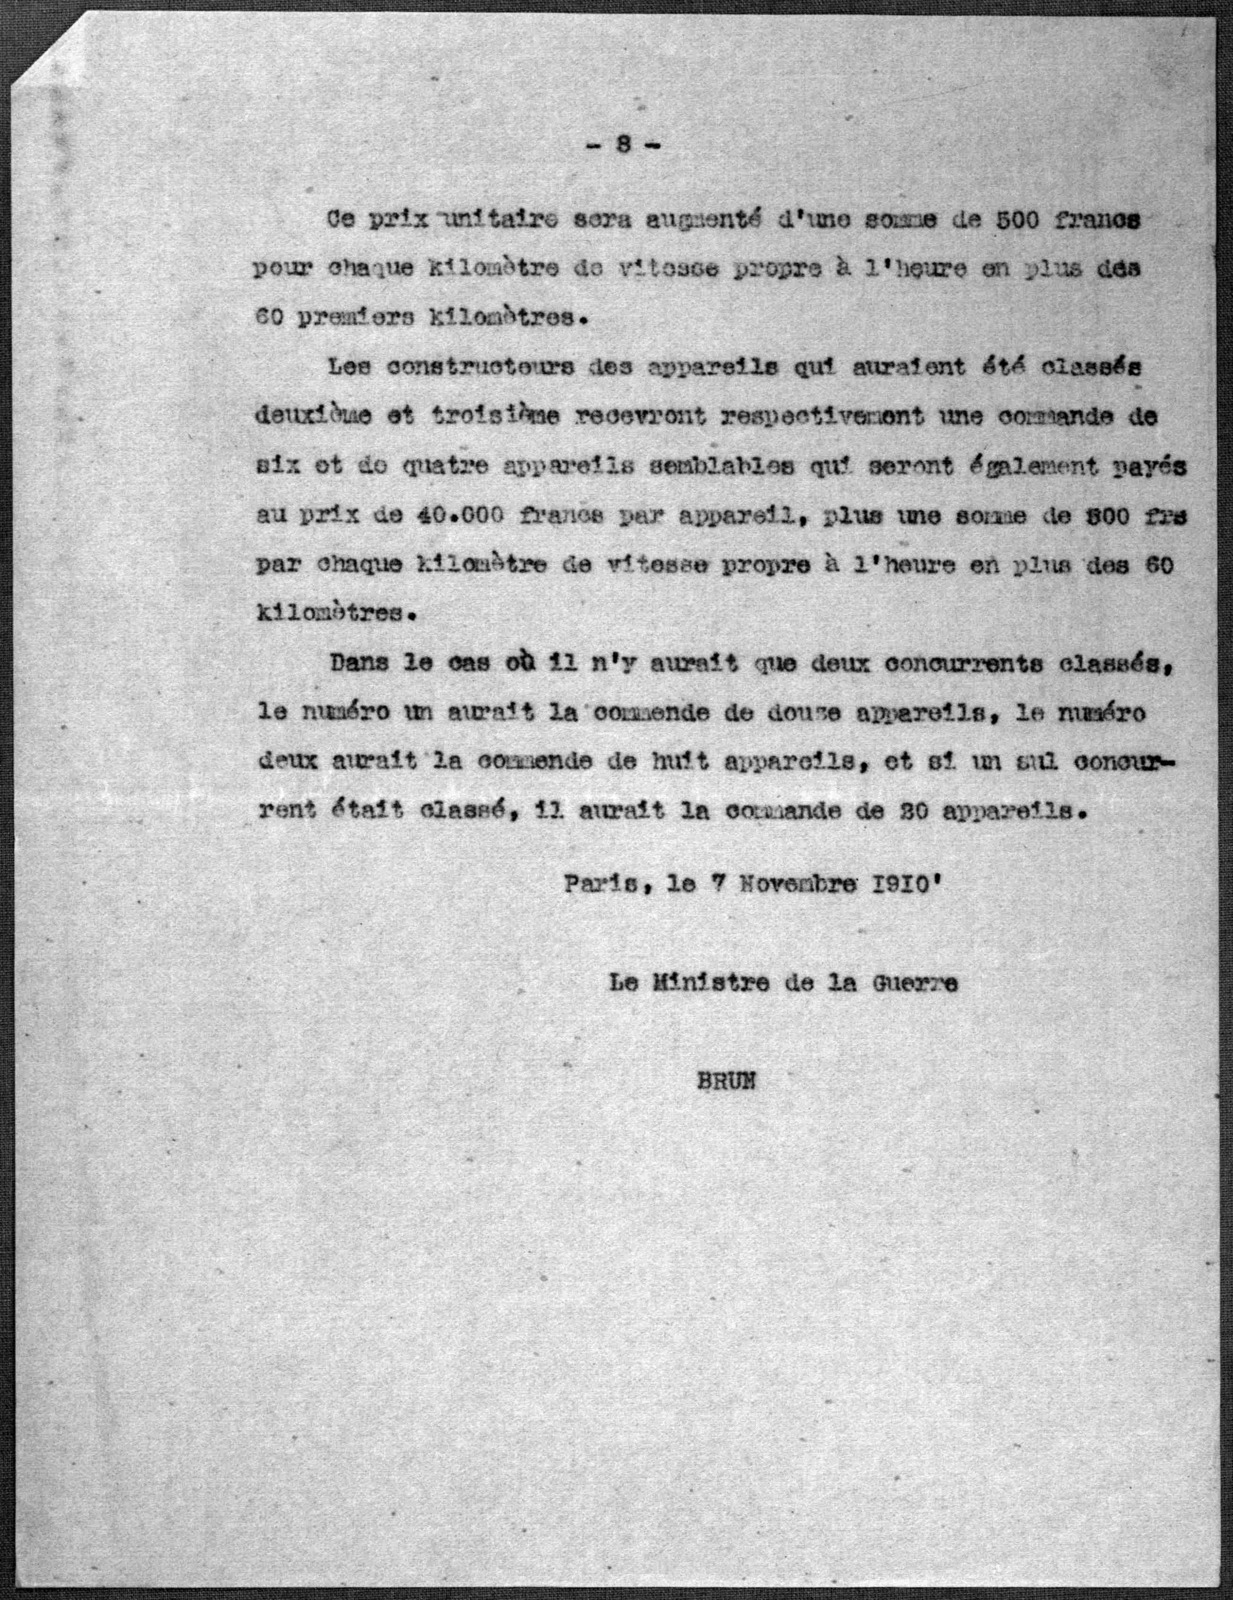 Subject File:  Foreign Business--Countries--France--Negotiations with Government, 1908-1909